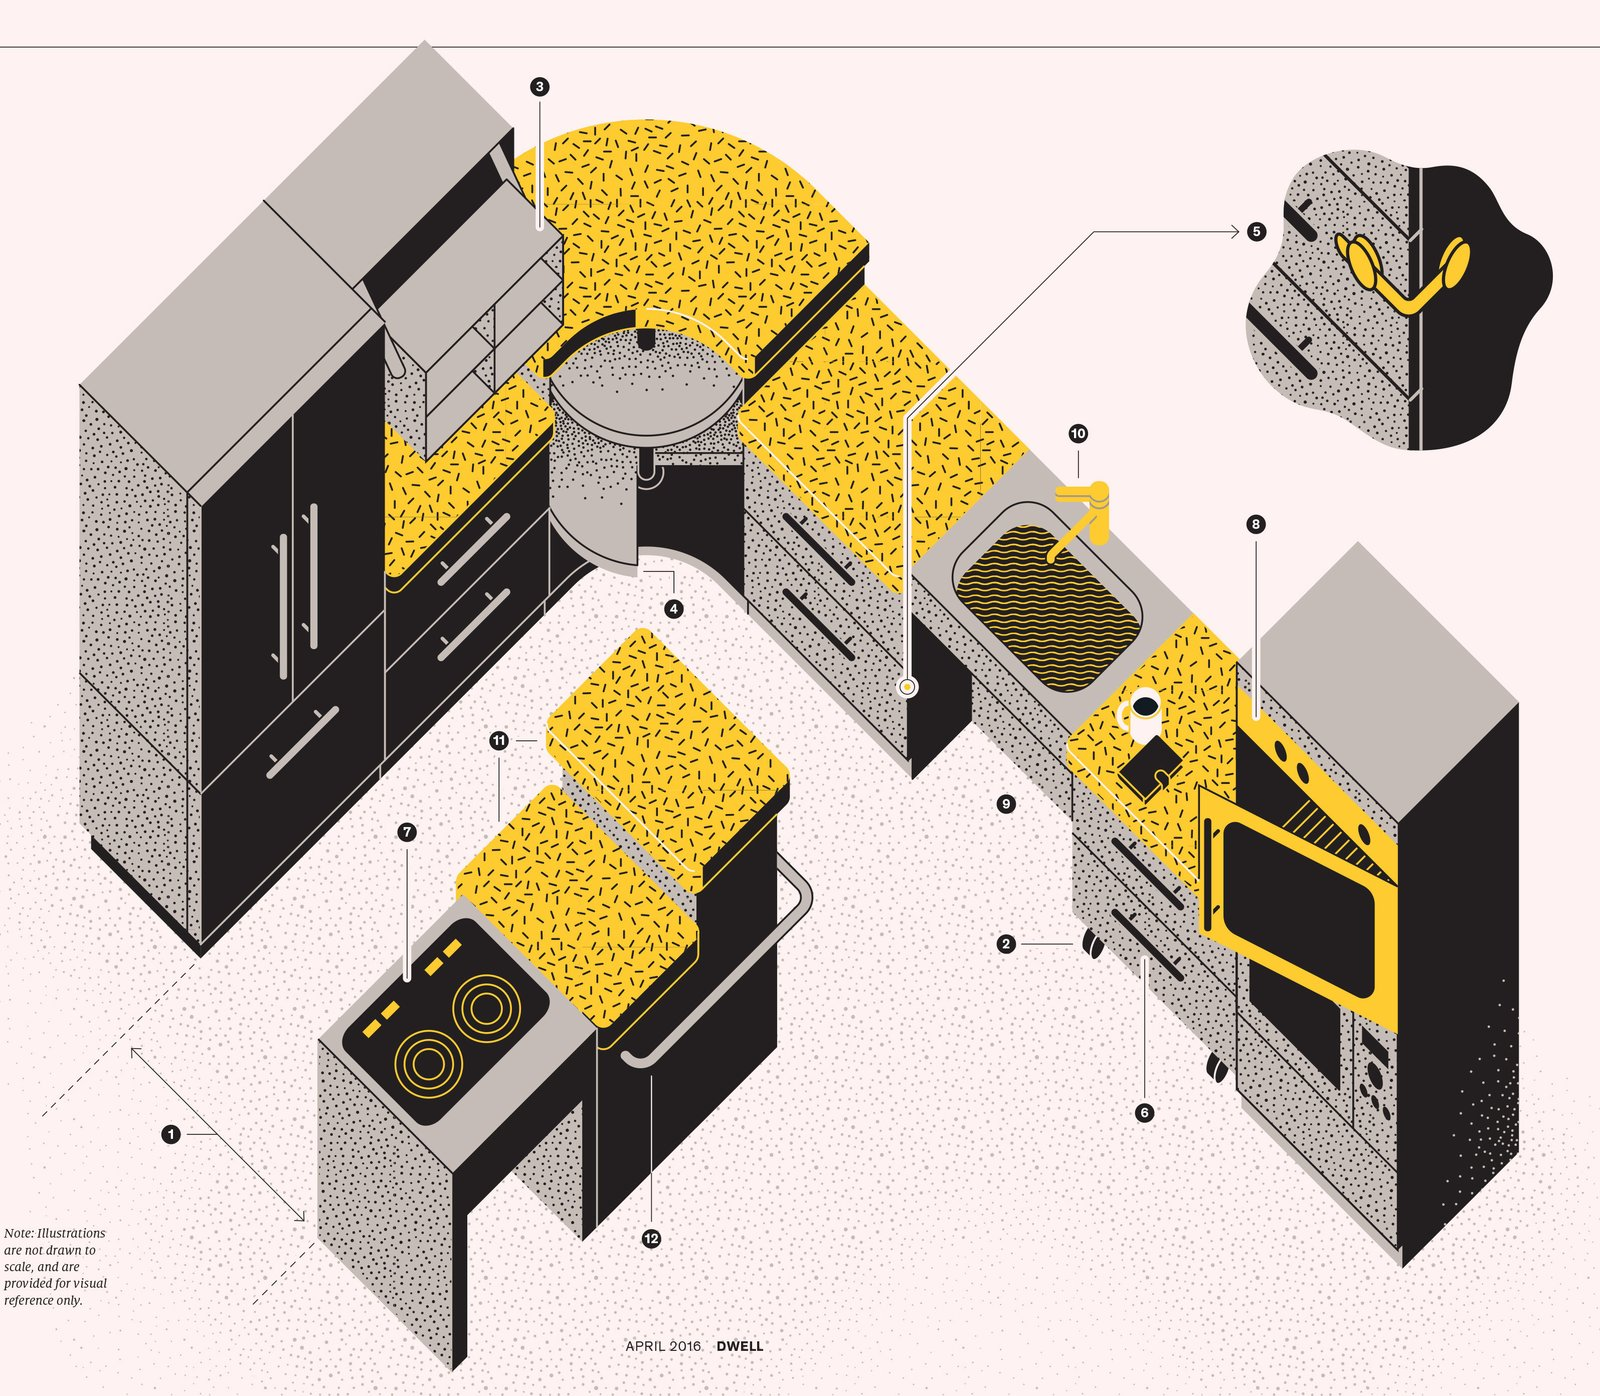 """LAYOUT  The ADA states the minimum clearance for wheelchair accessibility is 32 inches wide. To improve flow, Soheil Nakhshab of Nakhshab Development & Design prefers a distance of 48 inches between the kitchen cabinets and the island (1).   LIGHTING  LED lights are long-lasting and easy on the eyes. In addition to task lighting above work stations, install lights in storage spaces to spotlight hard-to-see areas.  STORAGE  """"You want daily-use items at waist-height,"""" says architect Karen Braitmayer, who recommends rolling cabinets (2) and pull-down shelves (3). Rotating lazy susan trays (4) and full-extension slide shelving also give easier access to deeper storage spaces. Child-safety locks on cabinets keep contents secure (5).  DRAWERS  Lever-style door handles and wide drawer pulls (6) are easier to grasp. Nakhshab also suggests a touch system """"where you push the door and it pops open.""""  COOKTOP  Induction cooktops (7), which conduct heat only when in contact with a magnetic cooking vessel, are safer for homes with children, as well as for adults who may forget to shut off the burners. Braitmayer likes burners set side-by-side with controls at the front.  APPLIANCES  Drawer-style appliances and side-opening doors can be game changers. """"Imagine if you have a bad back,"""" says architect Robert Kahn. """"The side-opening oven (8) is an ADA design that benefits the general population."""" Light signals, which can be clearly seen from a distance, can also complement or replace audible alerts like buzzers.  SINK  Wheelchair users require clearance below the sink (9). Covering exposed pipes with insulating wrap can prevent burns or abrasions, says Braitmayer. Lever-style fixtures (10) are easier to grip than twist knobs, and motion-sensor technology gives users hands-free control.  WORK SURFACES  Countertops installed at varying levels (11) offer easy-to-use work spaces, regardless of the user's height. Rails installed along the perimeter (12) offer extra support.  FLOOR  Surfac"""